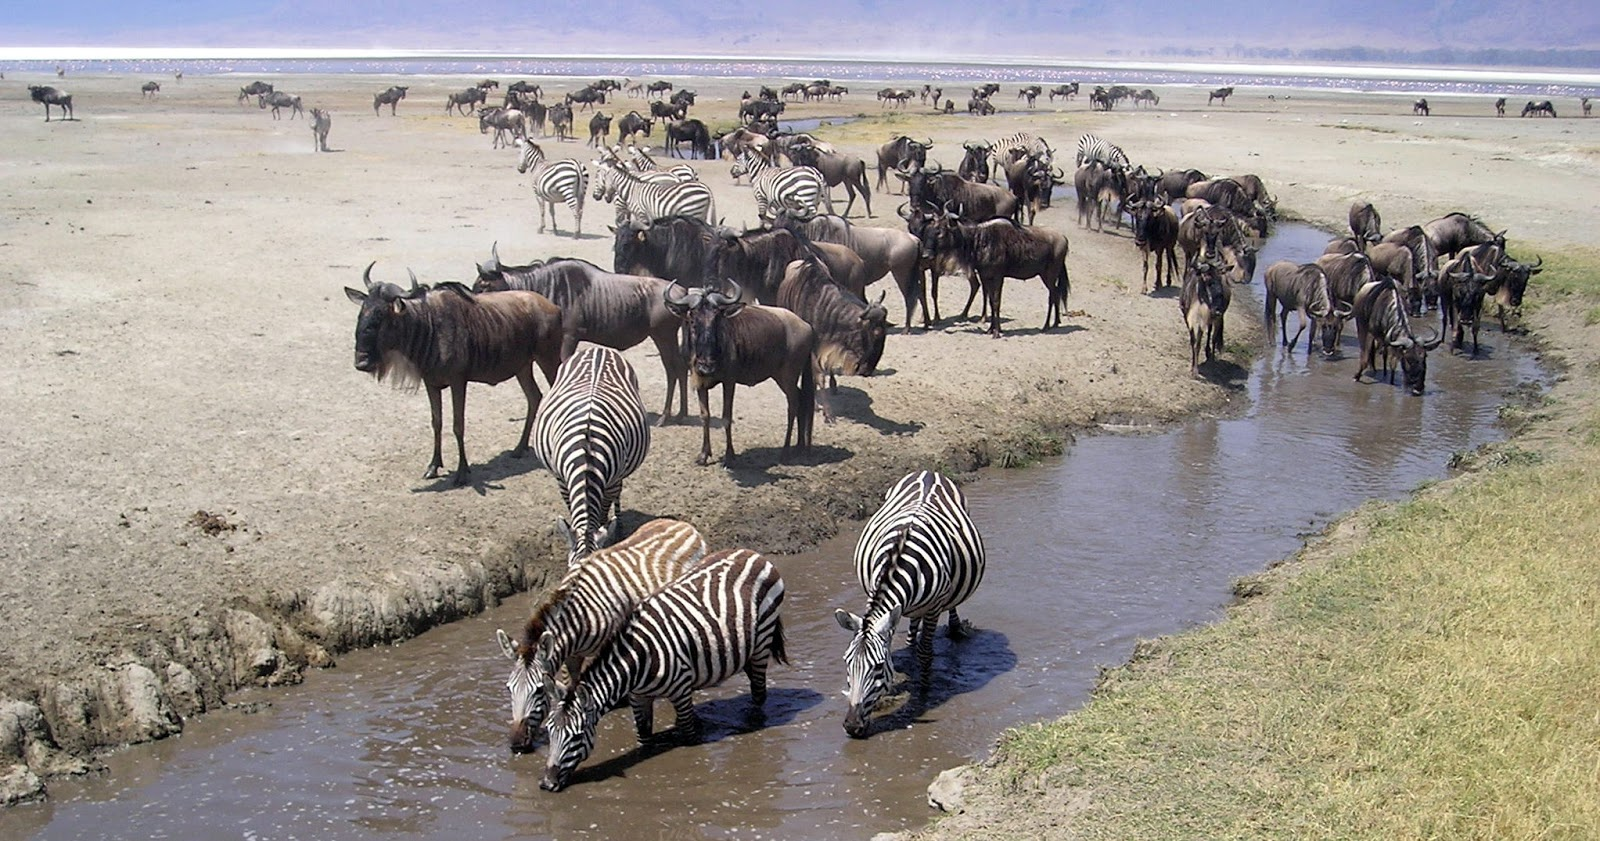 a journey in tanzania Information on what to pack and wear in tanzania for wildlife safari & beach travels also, review safari trip prices and tours for honeymooners, families and independent travelers, guest reviews, videos, maps and many more tour options.